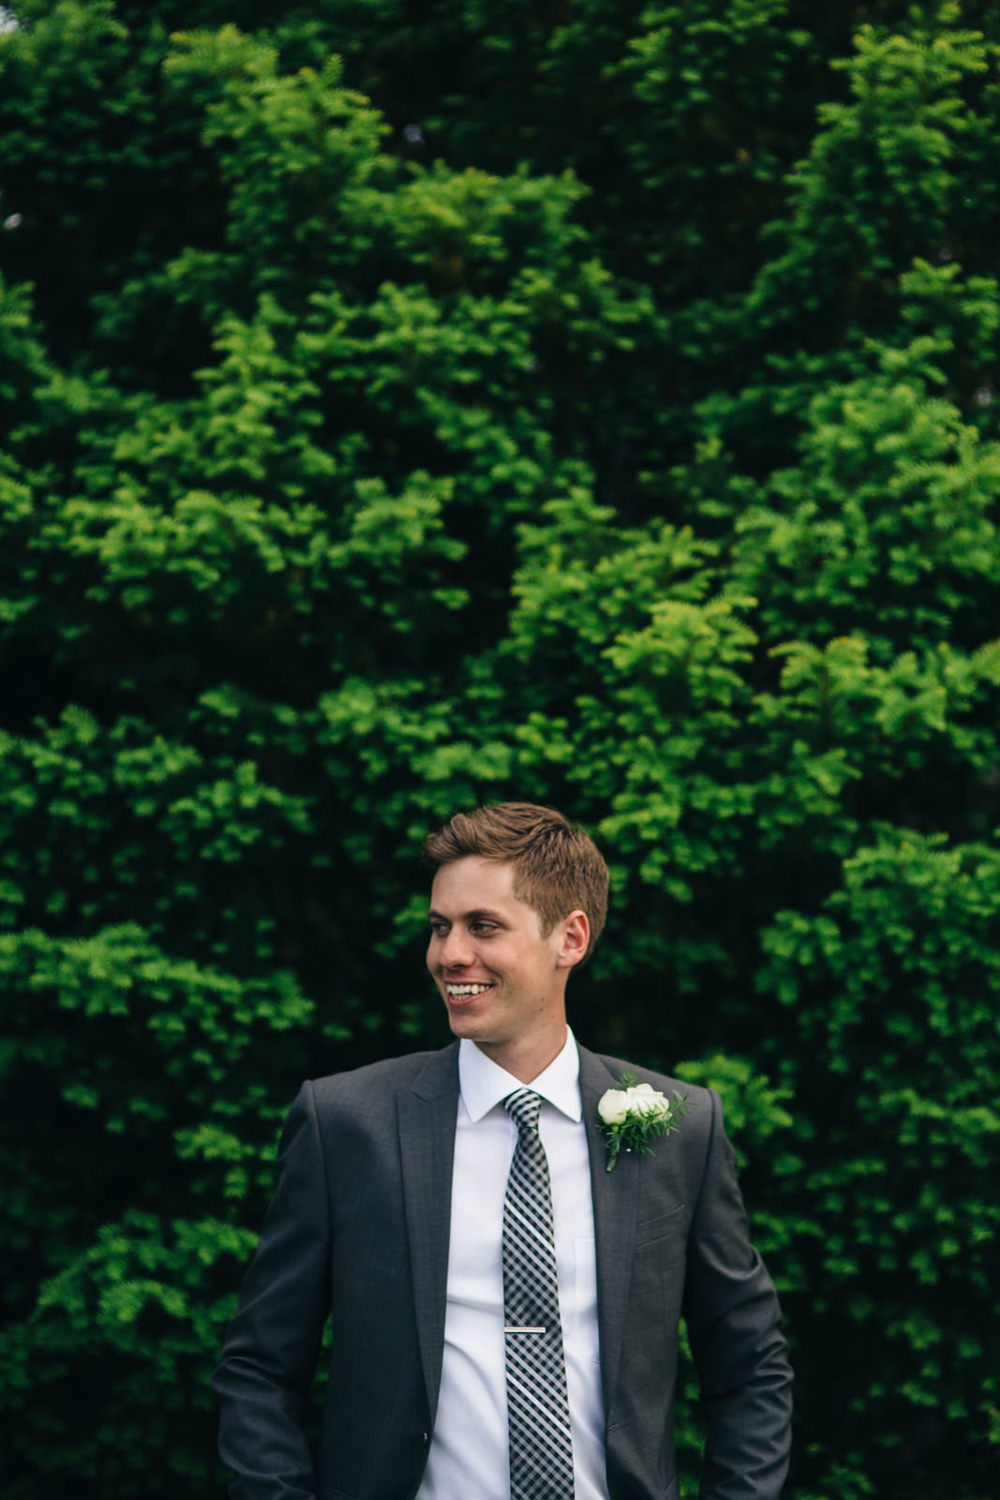 Groom in black suit and checkered tie in Wooster, Ohio Summer wedding.